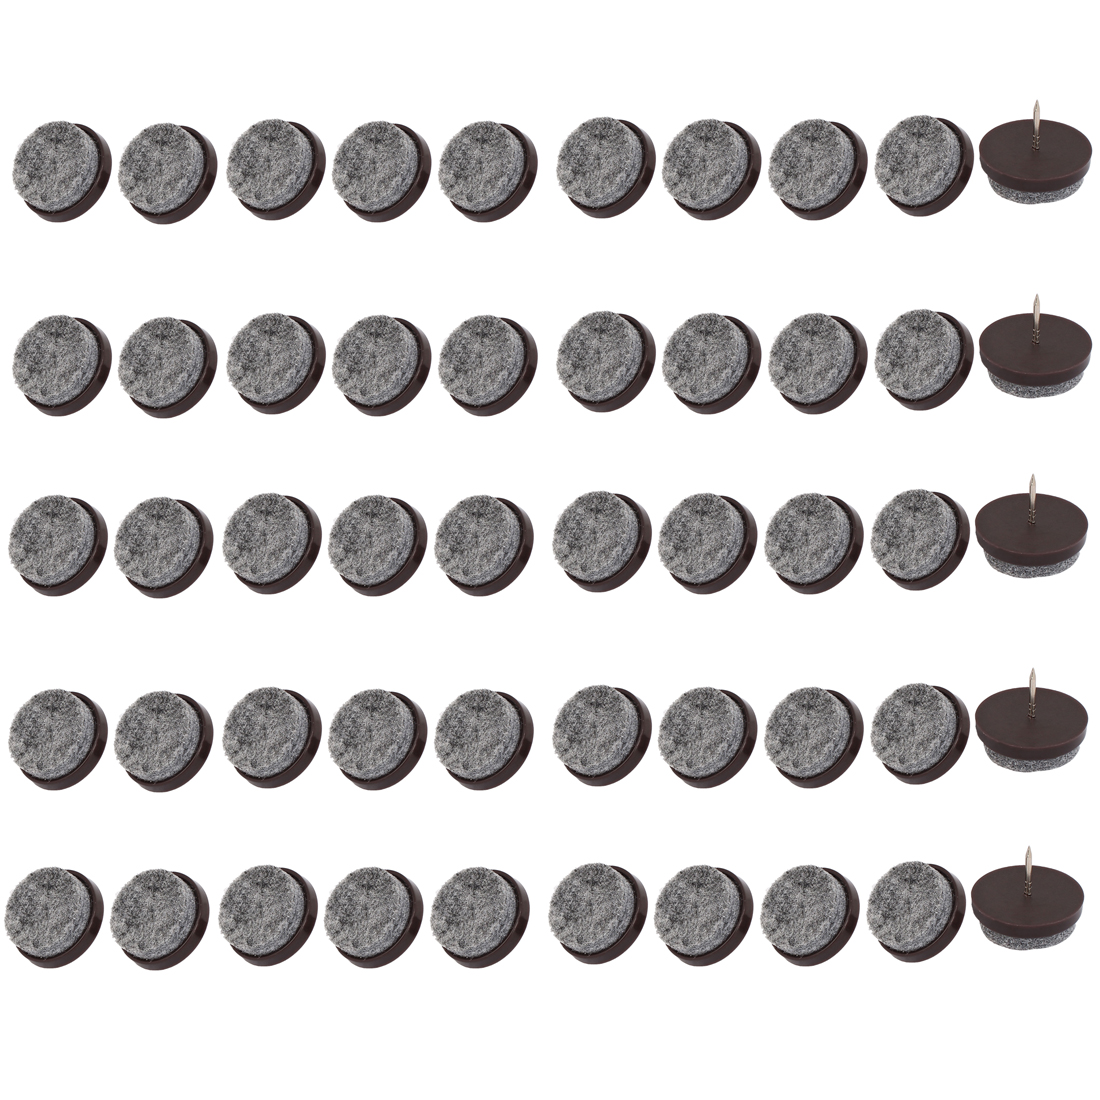 Table Chair Legs Floor Protector Felt Furniture Feet Nails Coffee Color 28mm Dia 50pcs